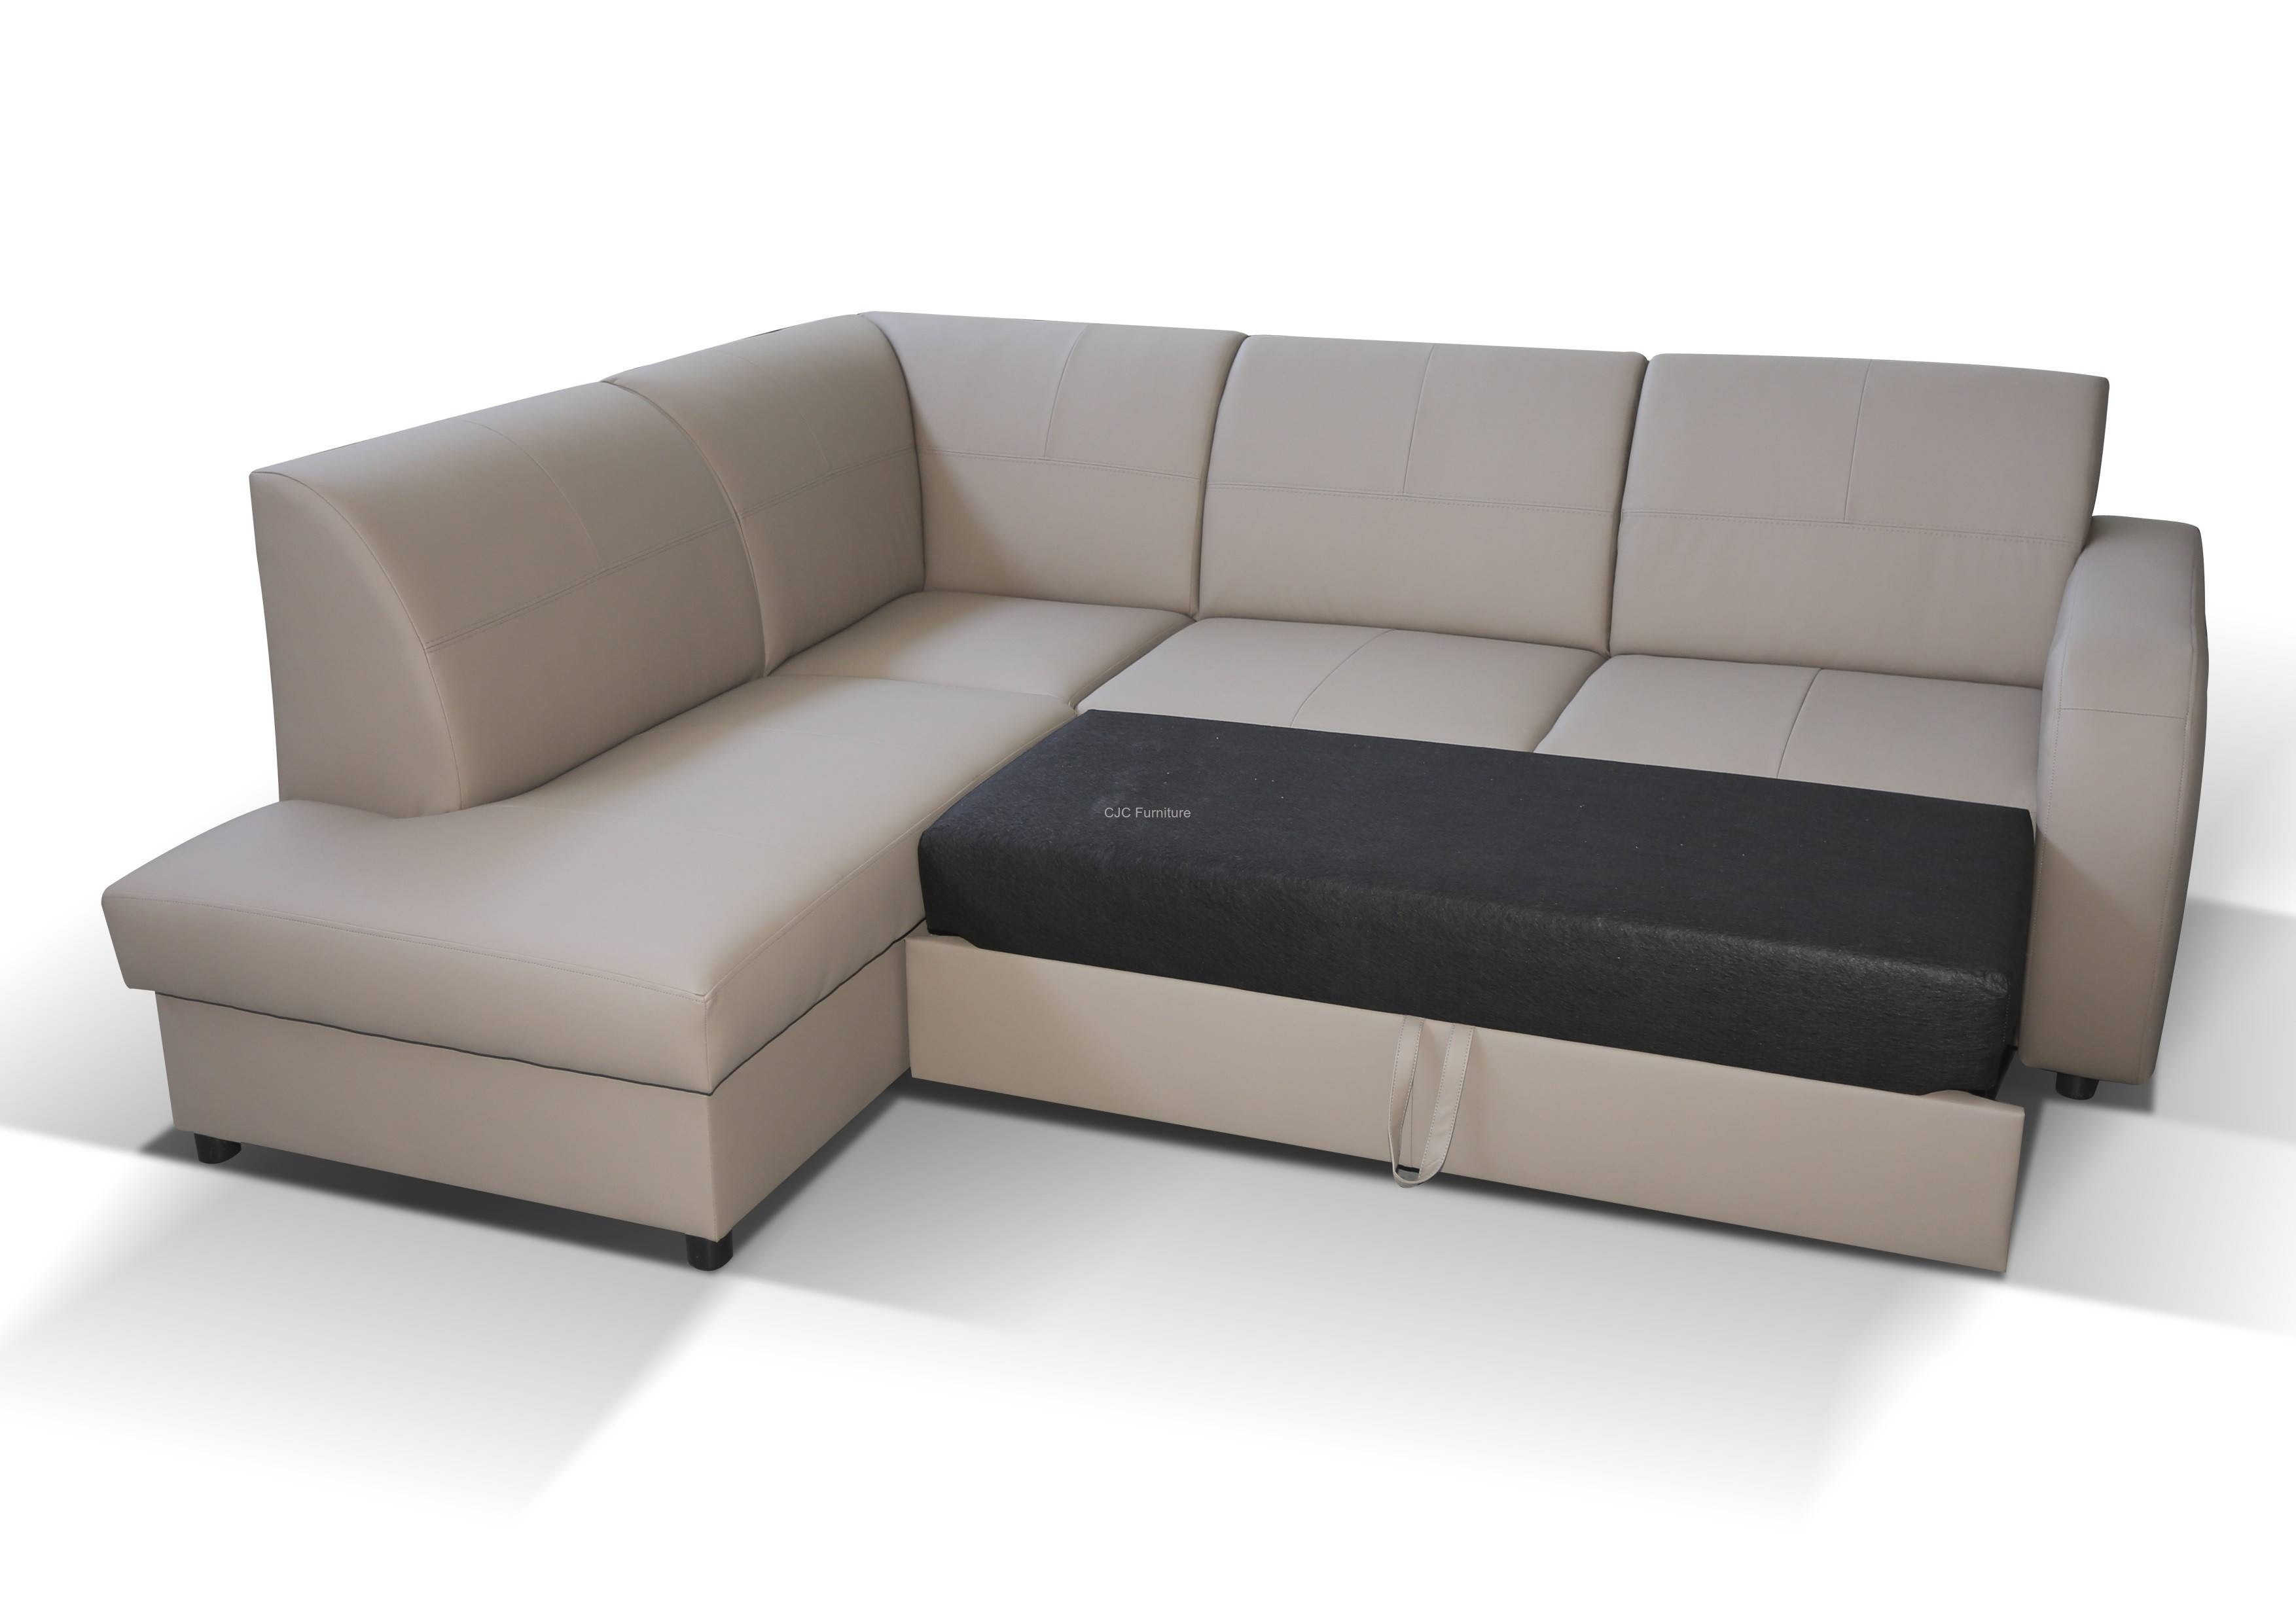 Modern Corner Sofa Bed With Storage | Eva Furniture with Sofa Beds With Storages (Image 21 of 30)